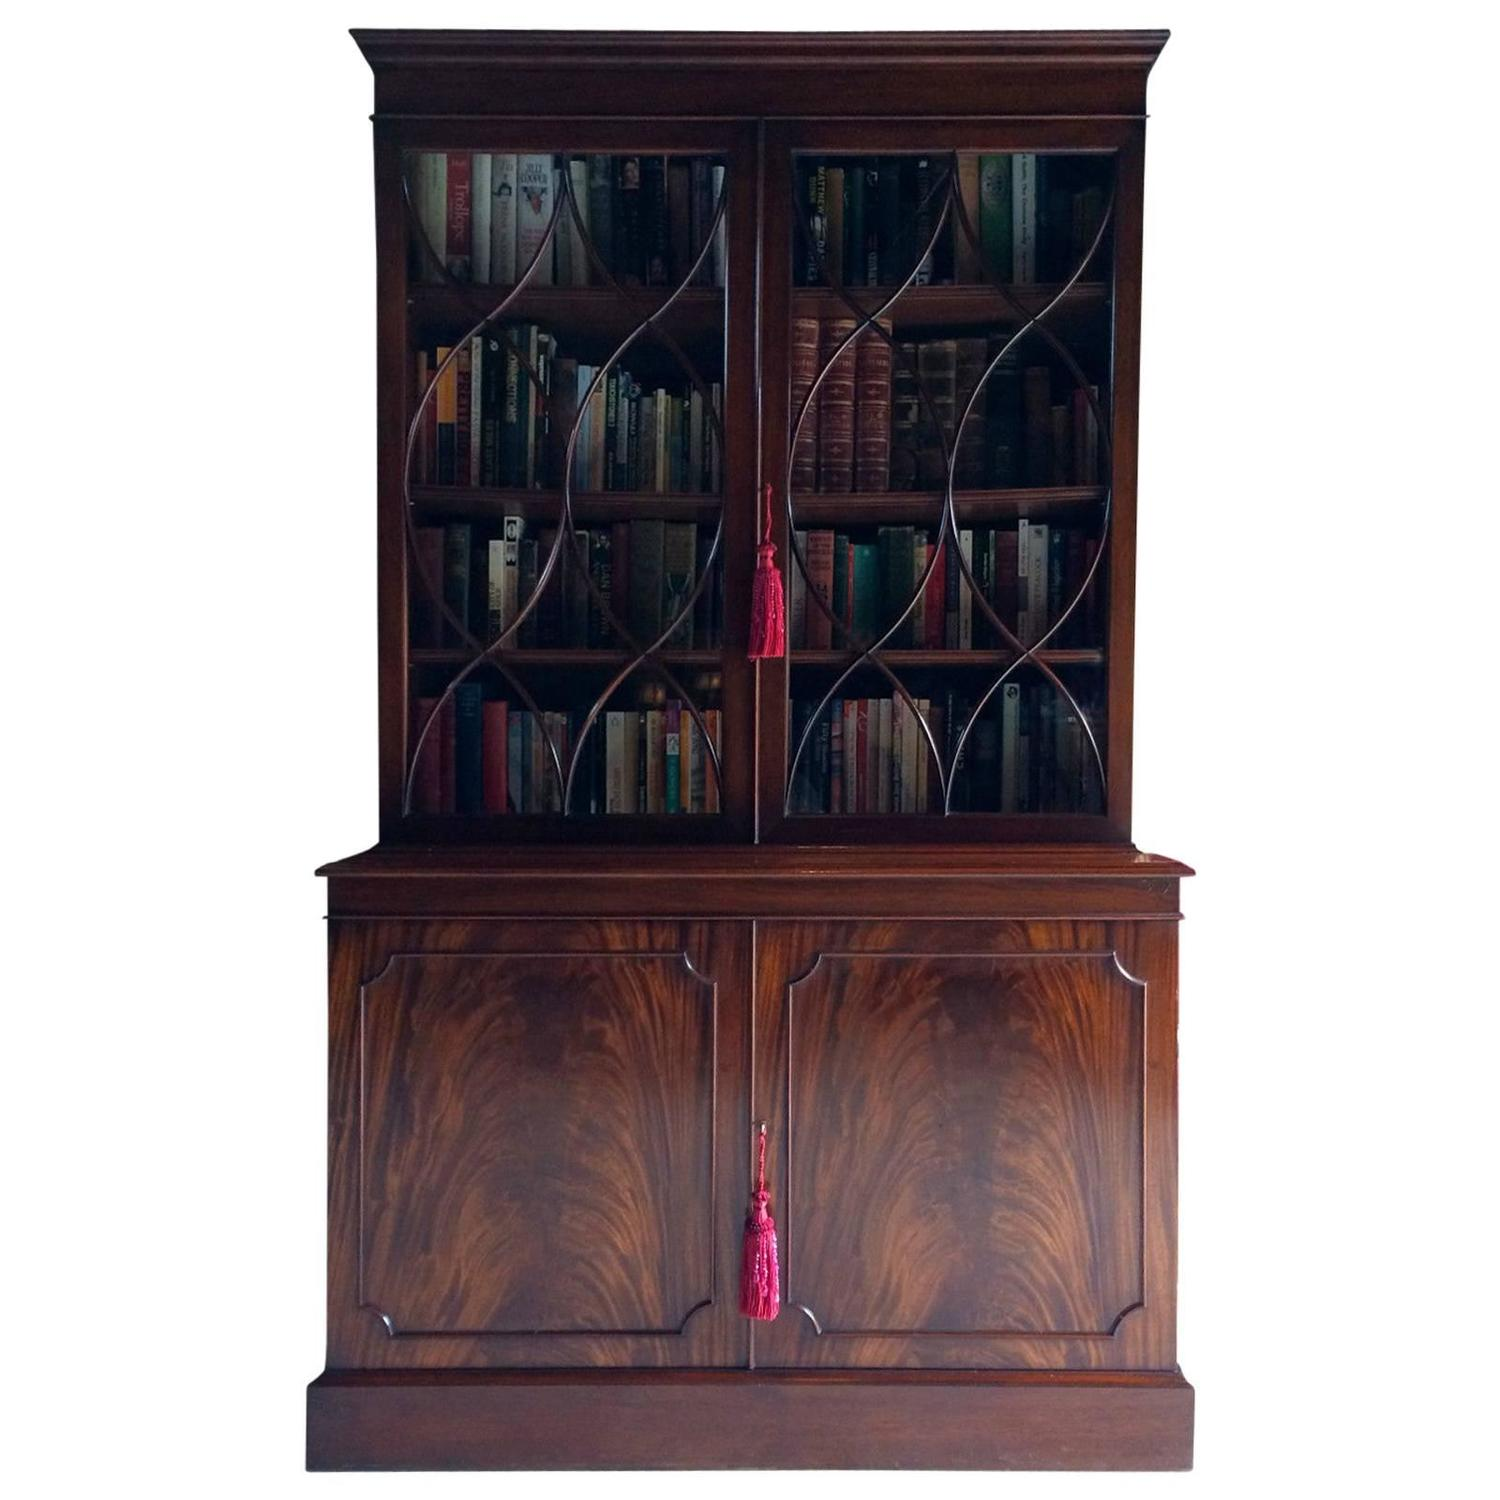 Antique Style Bookcase Mahogany Display Cabinet Two-Door Large Astragal at  1stdibs - Antique Style Bookcase Mahogany Display Cabinet Two-Door Large